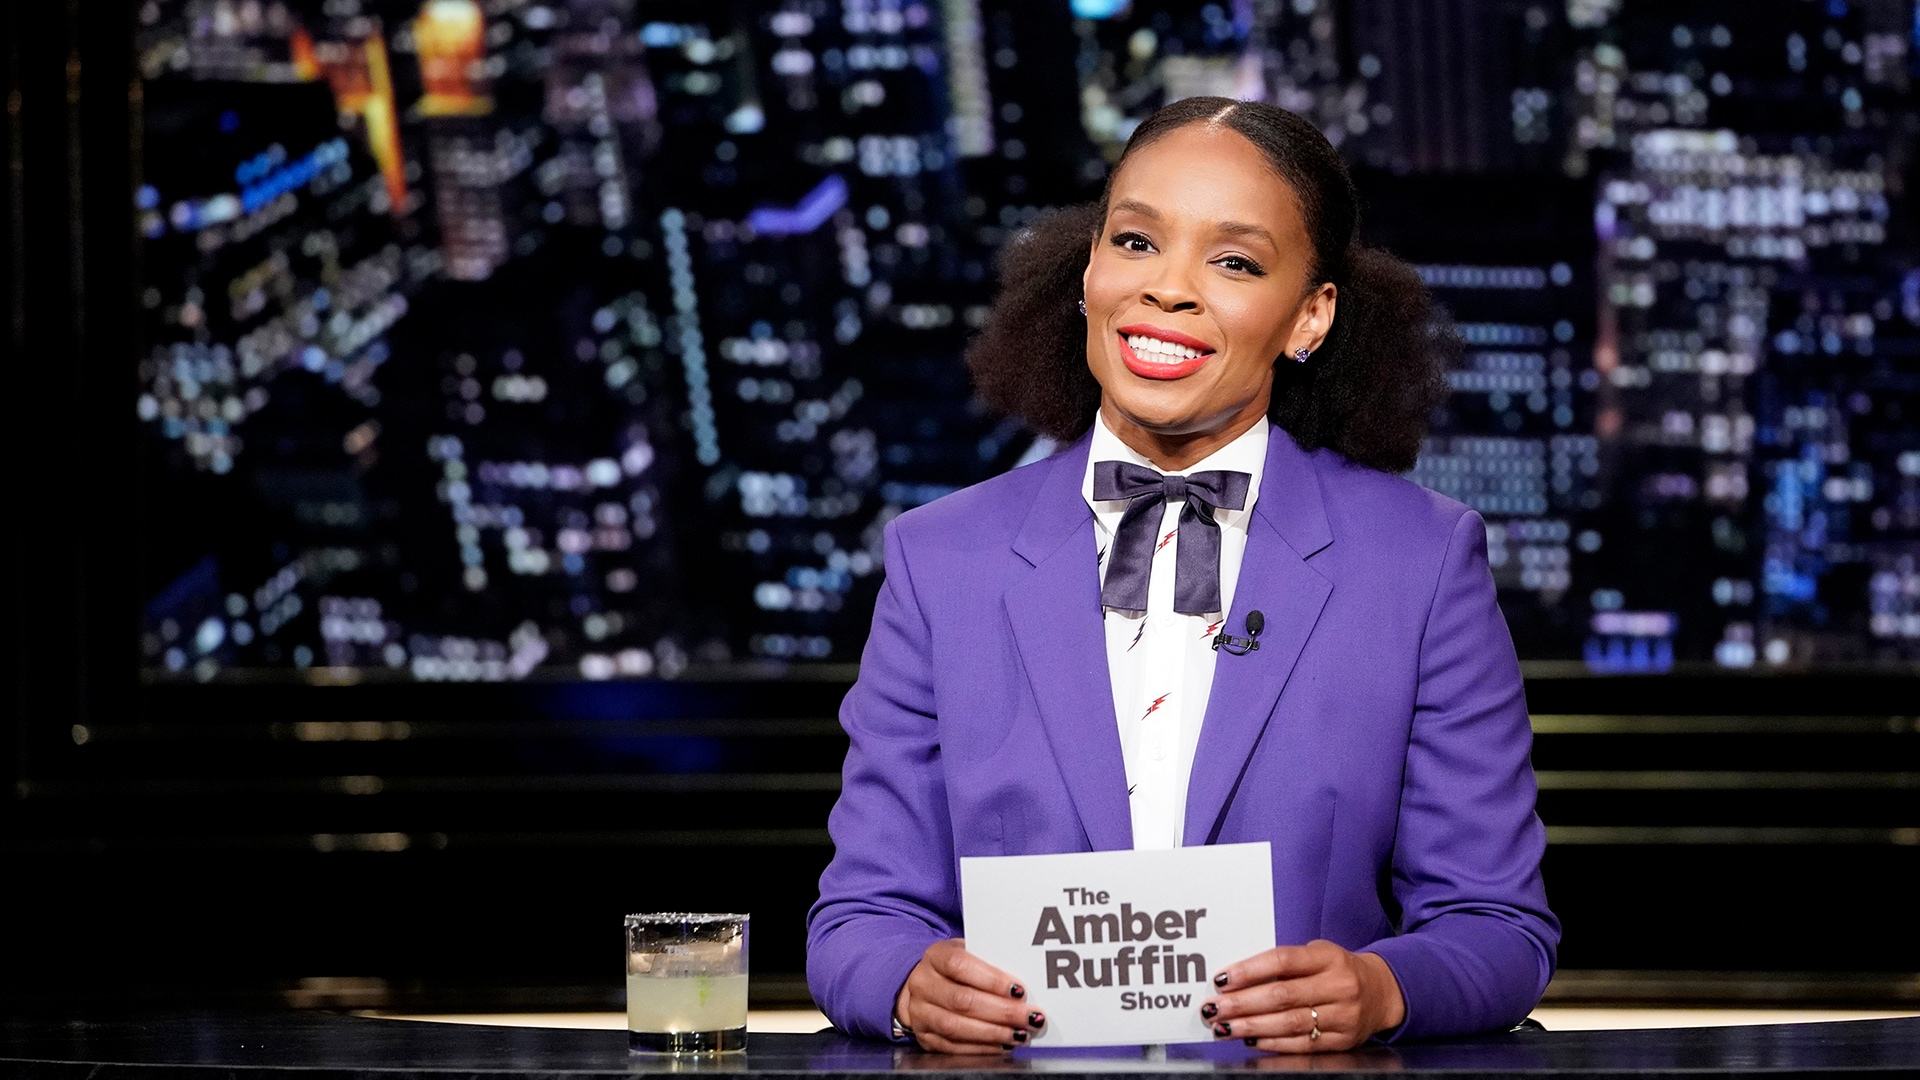 Watch The Amber Ruffin Show Online | Peacock